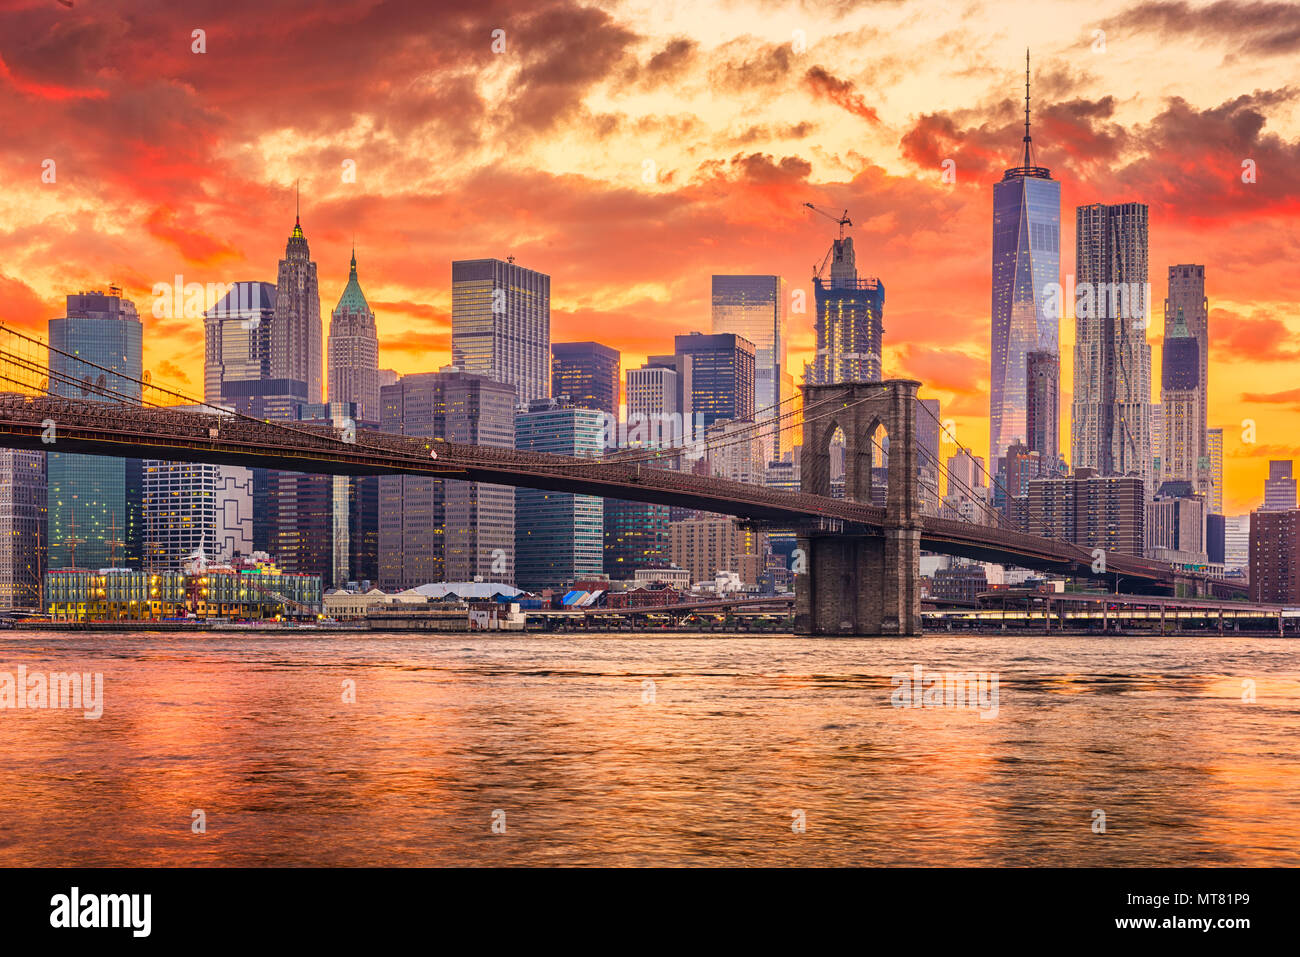 New York, New York, USA skyline of Manhattan on the East River with Brooklyn Bridge after sunset. - Stock Image